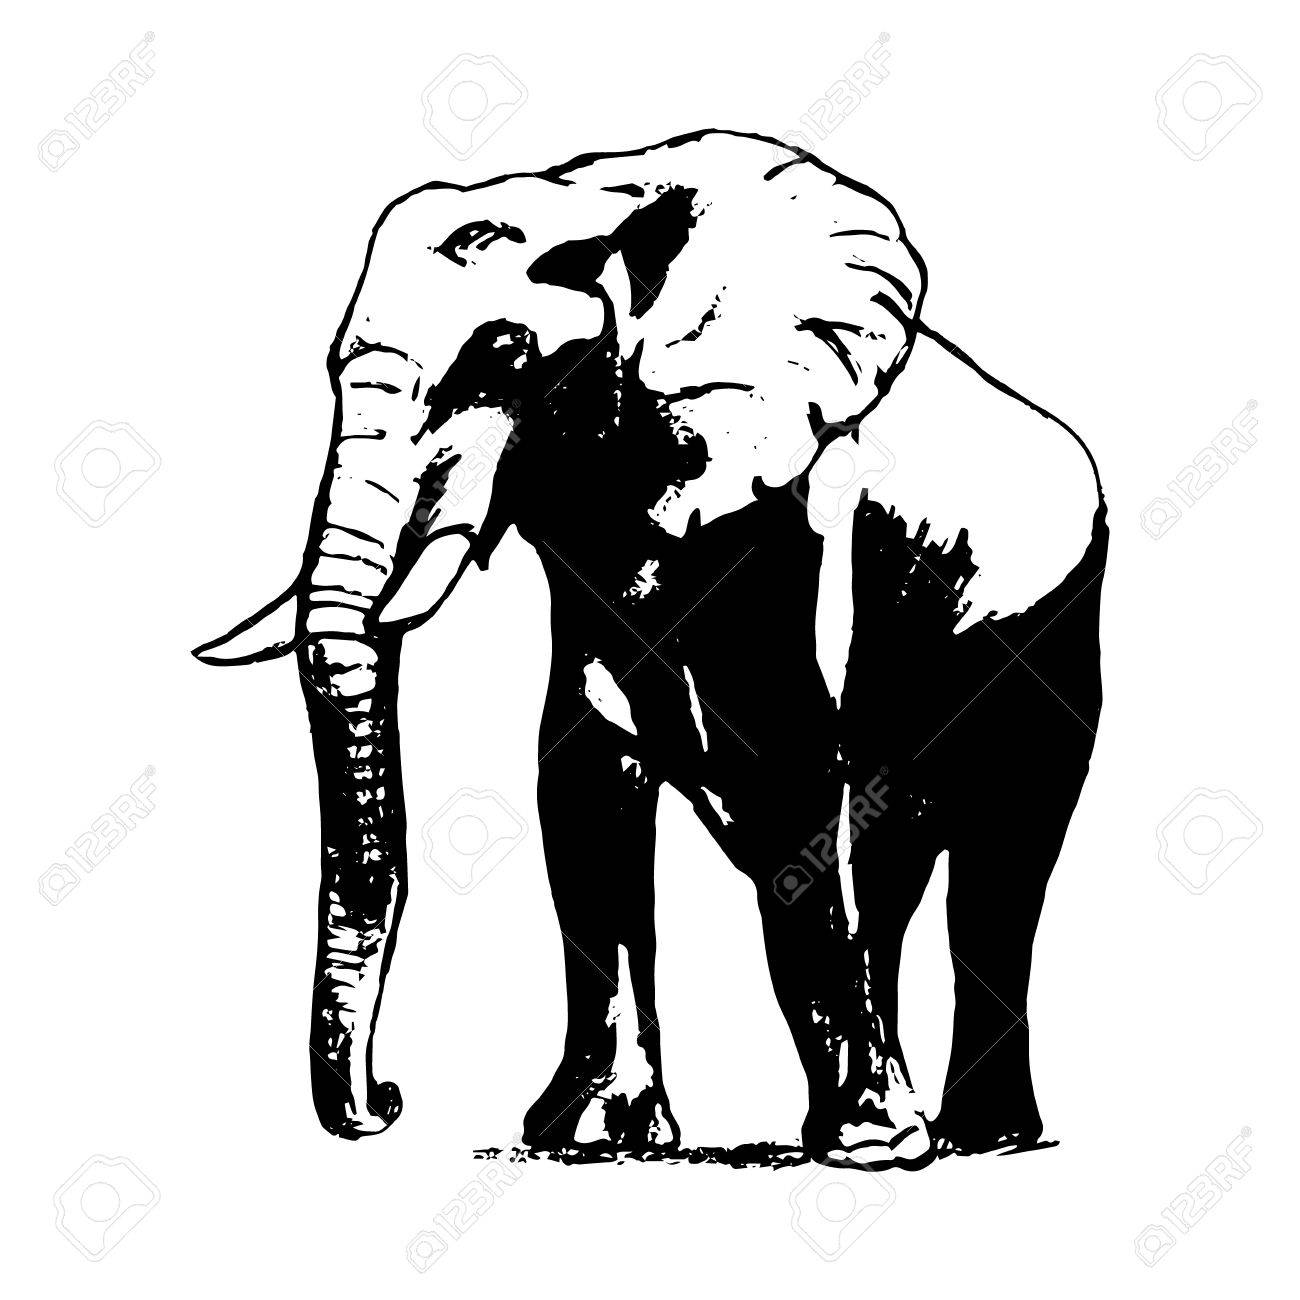 1300x1300 Graphic Image Of An Elephant On A White Background. The Freehand